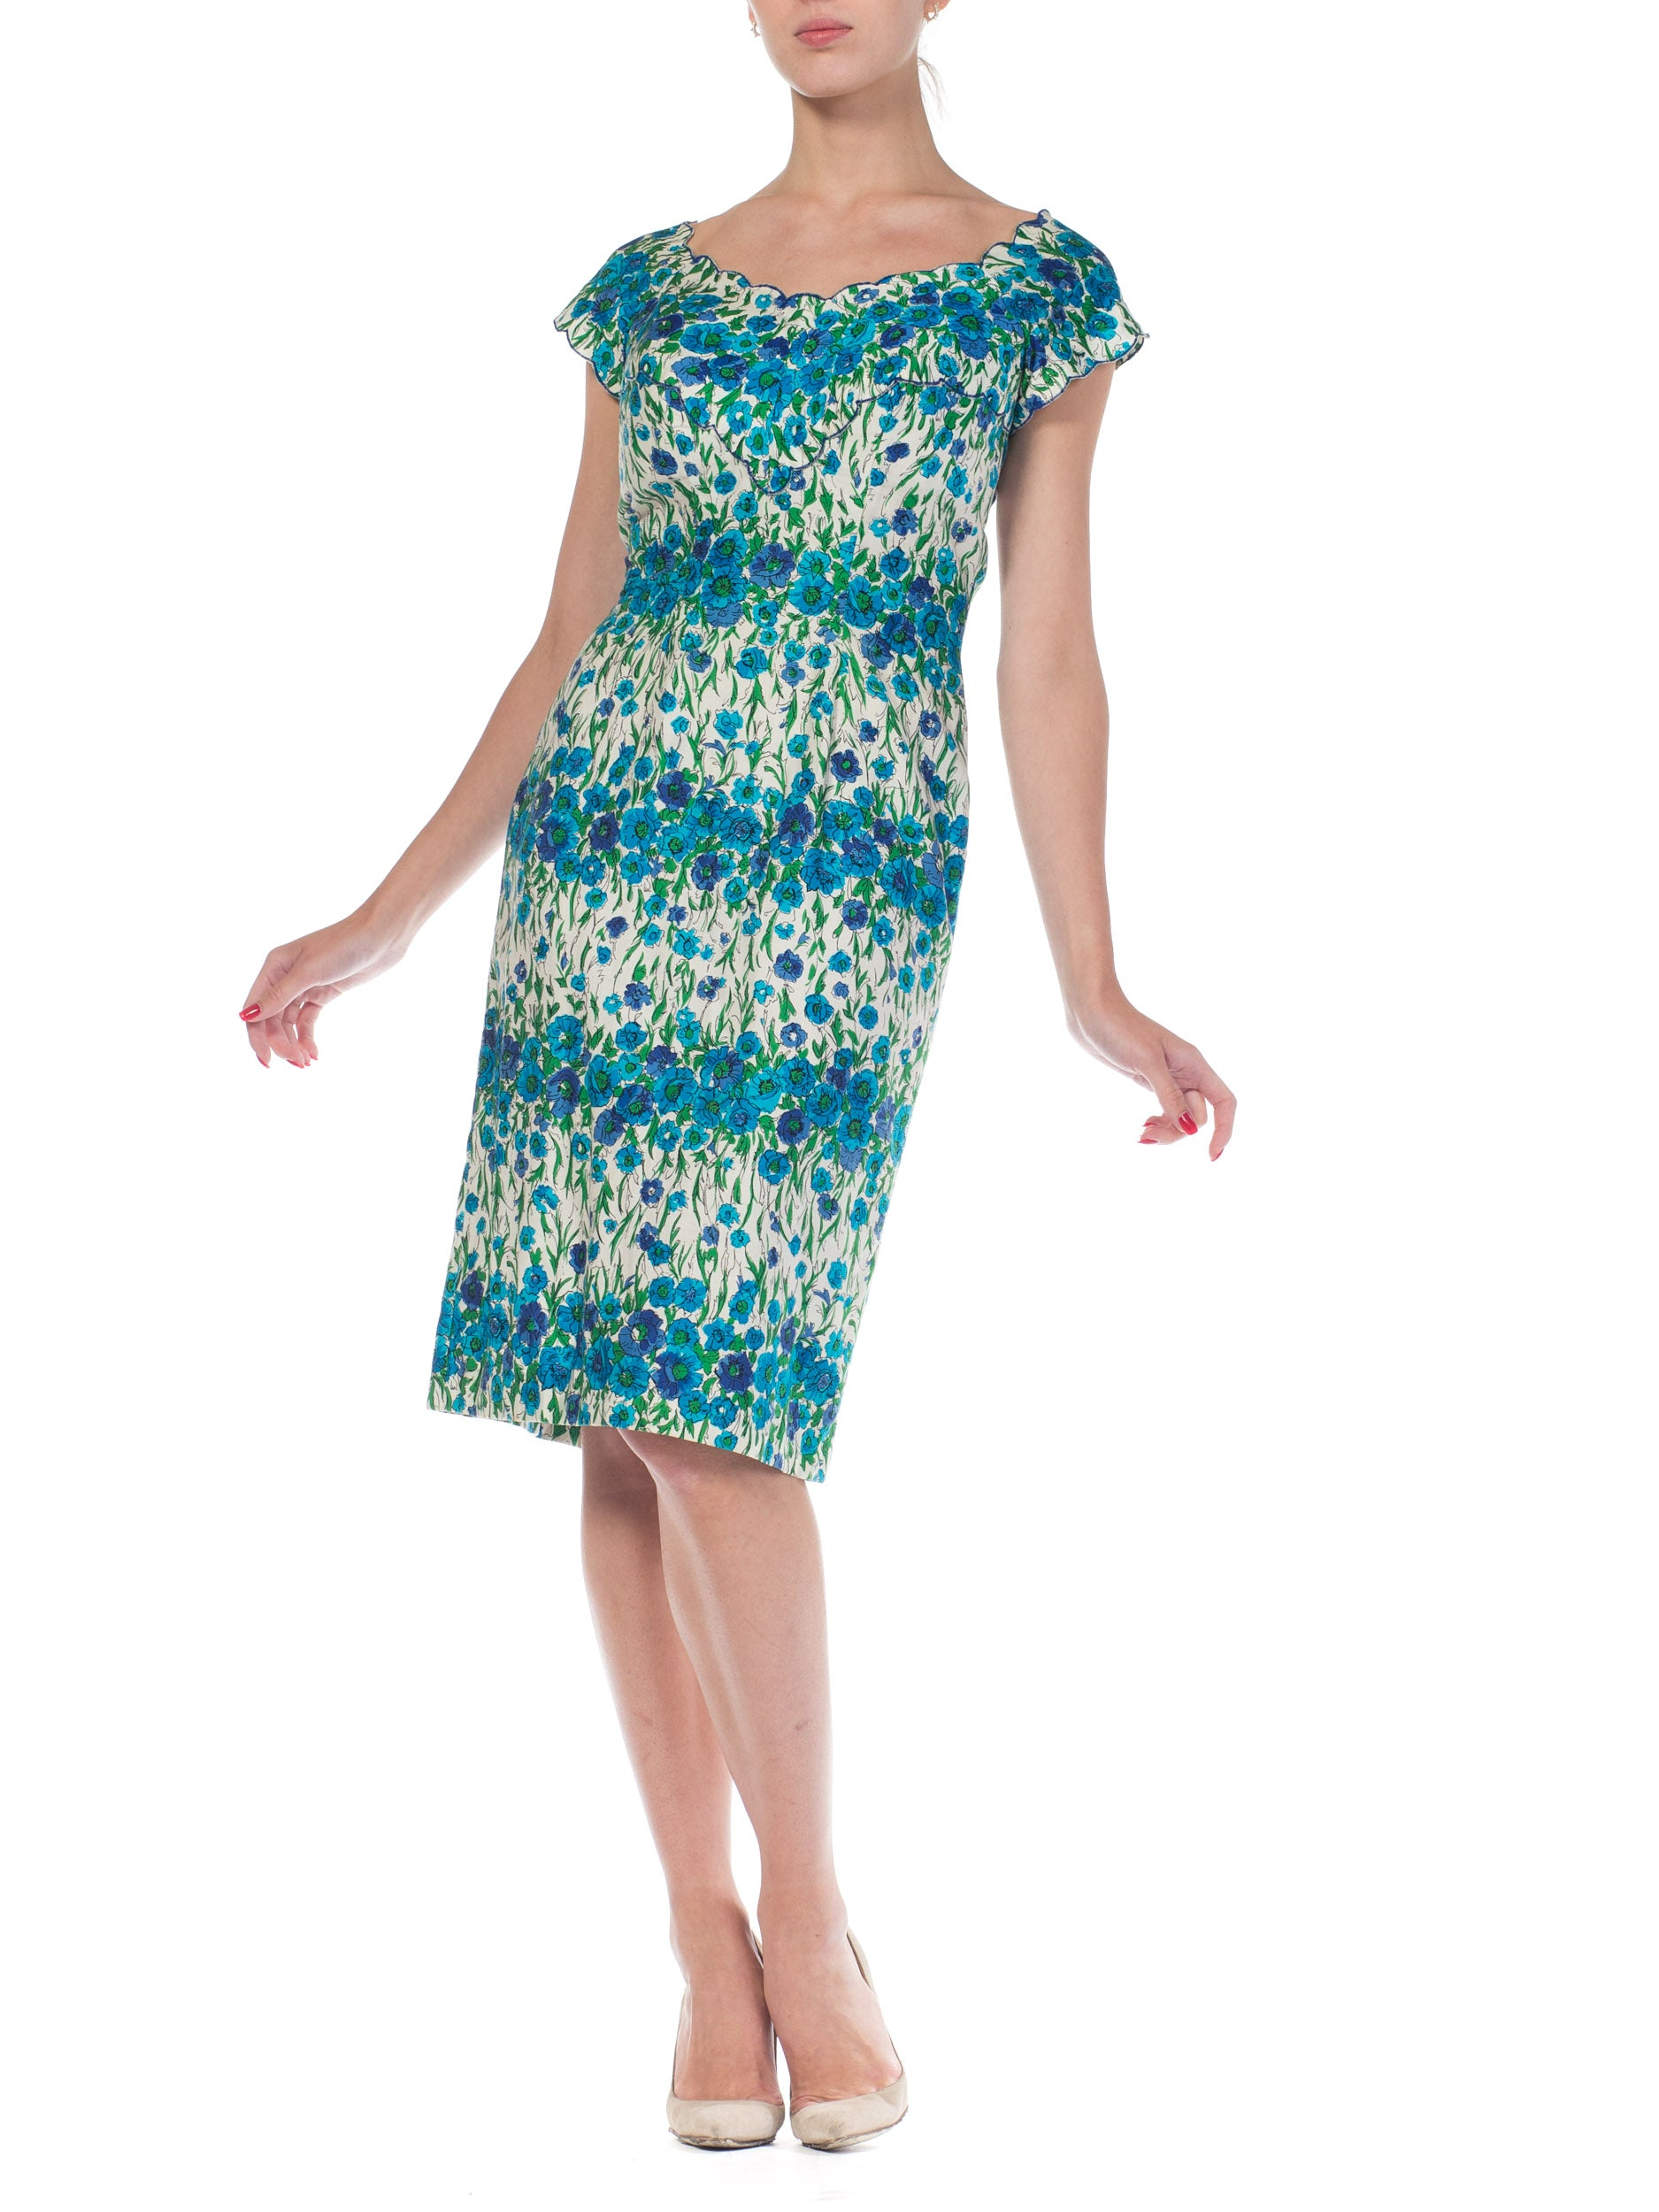 1950S Blue & Green Floral Cotton Alix Of Miami Sexy Ladylike Day Dress